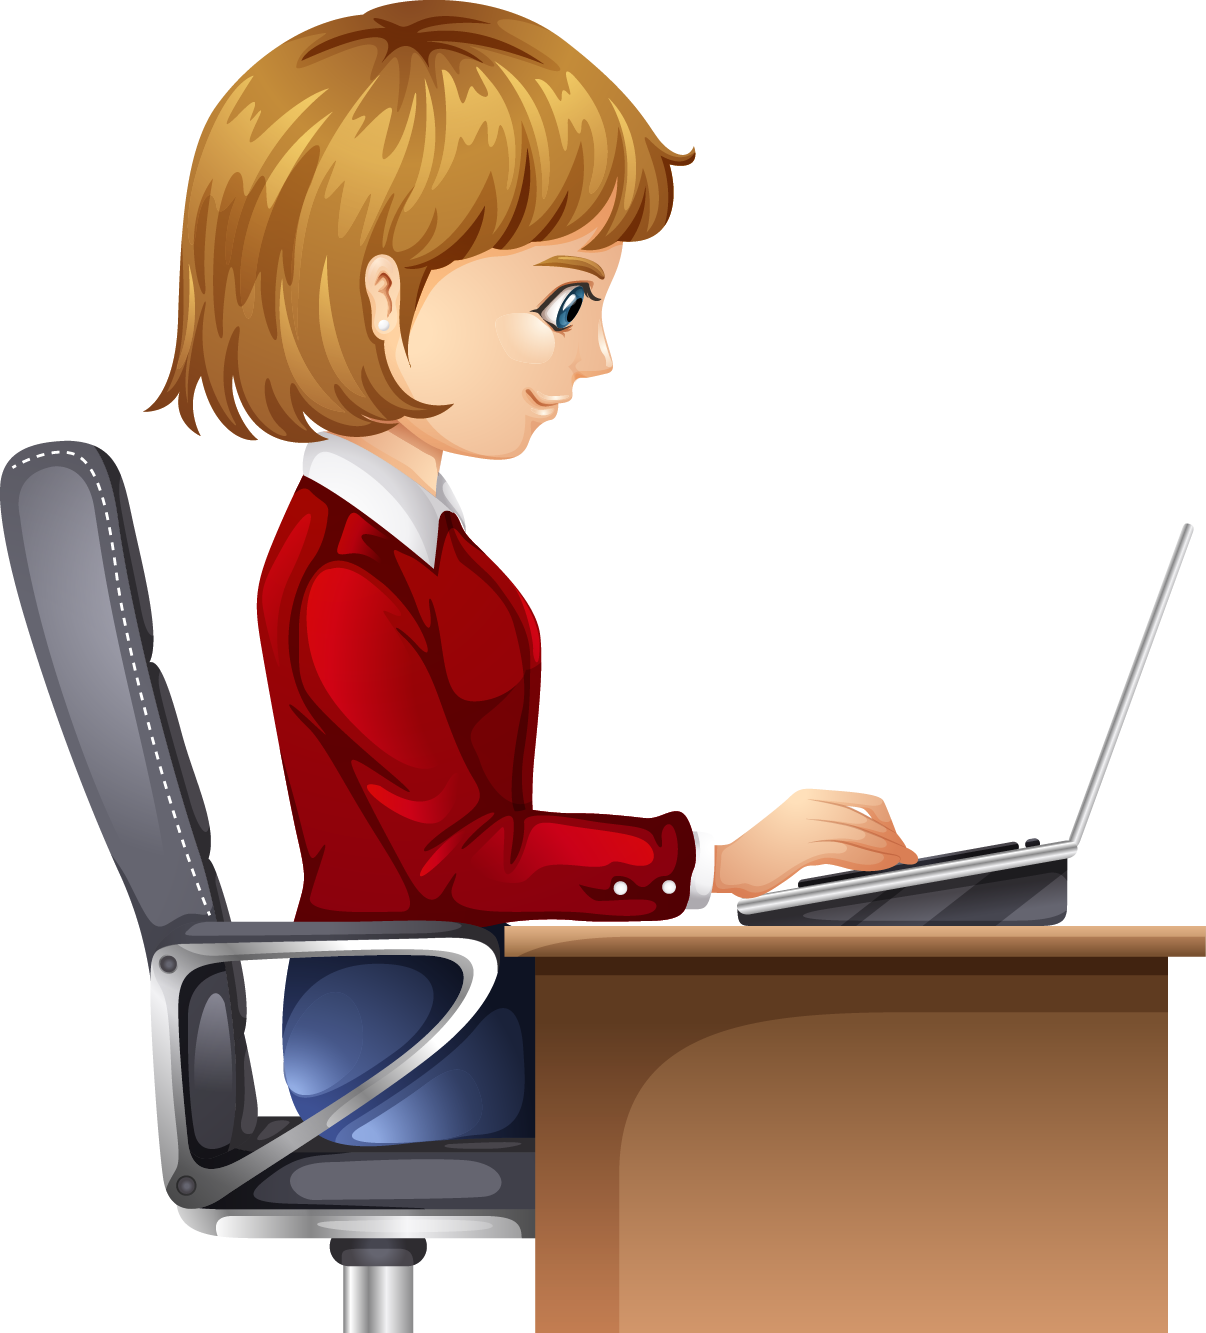 Office clipart professional office. Photography royalty free illustration